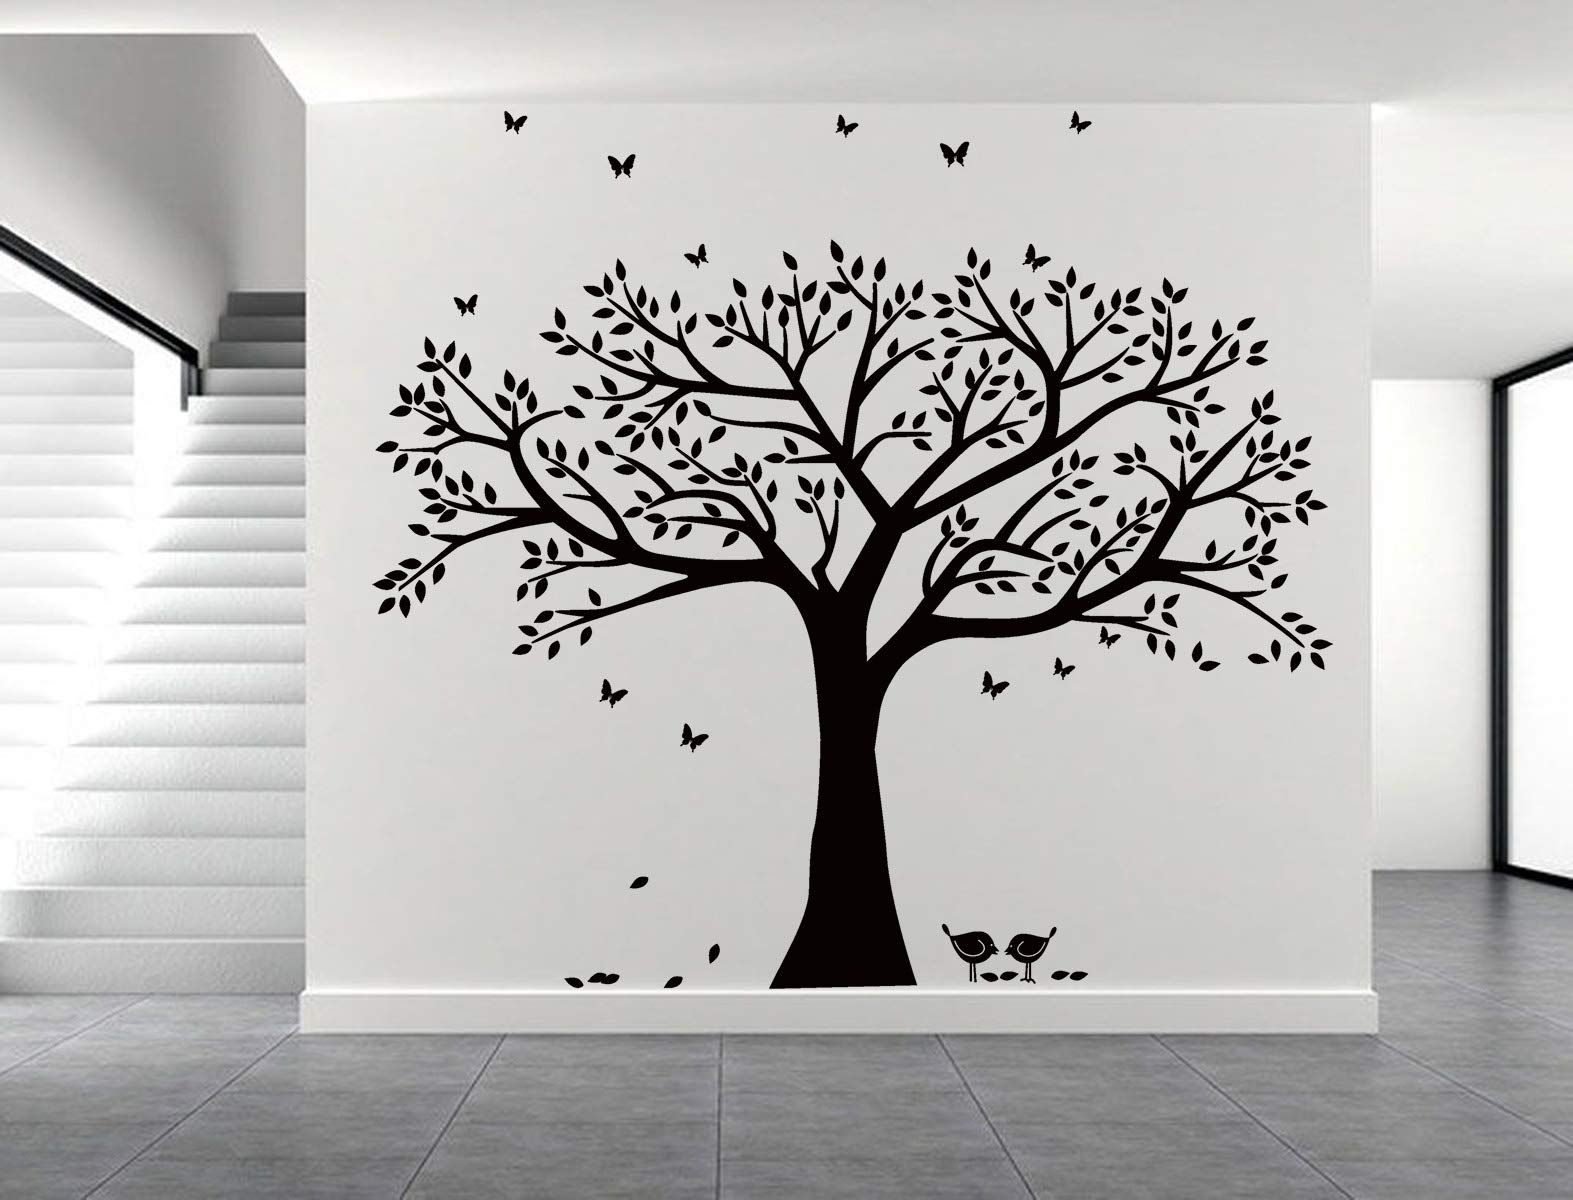 LSKOO Family Photo Frame Tree Wall Decals Family Tree Decal Living Room Home Decor (108'' Wide x 84'' Tall) (Black) by LSKOO (Image #4)